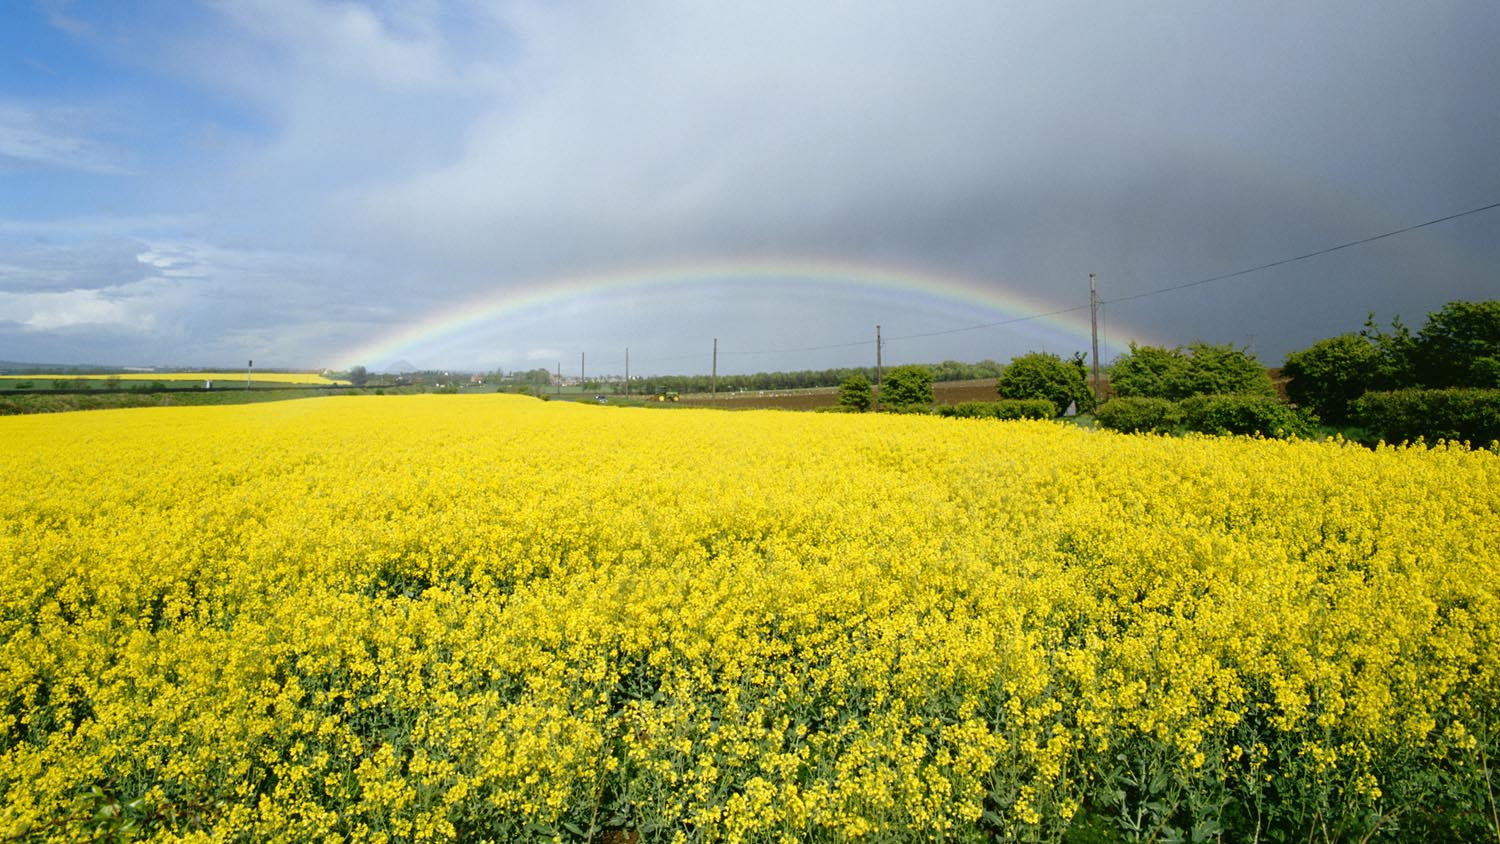 Oilseeds could see decline despite improved prices